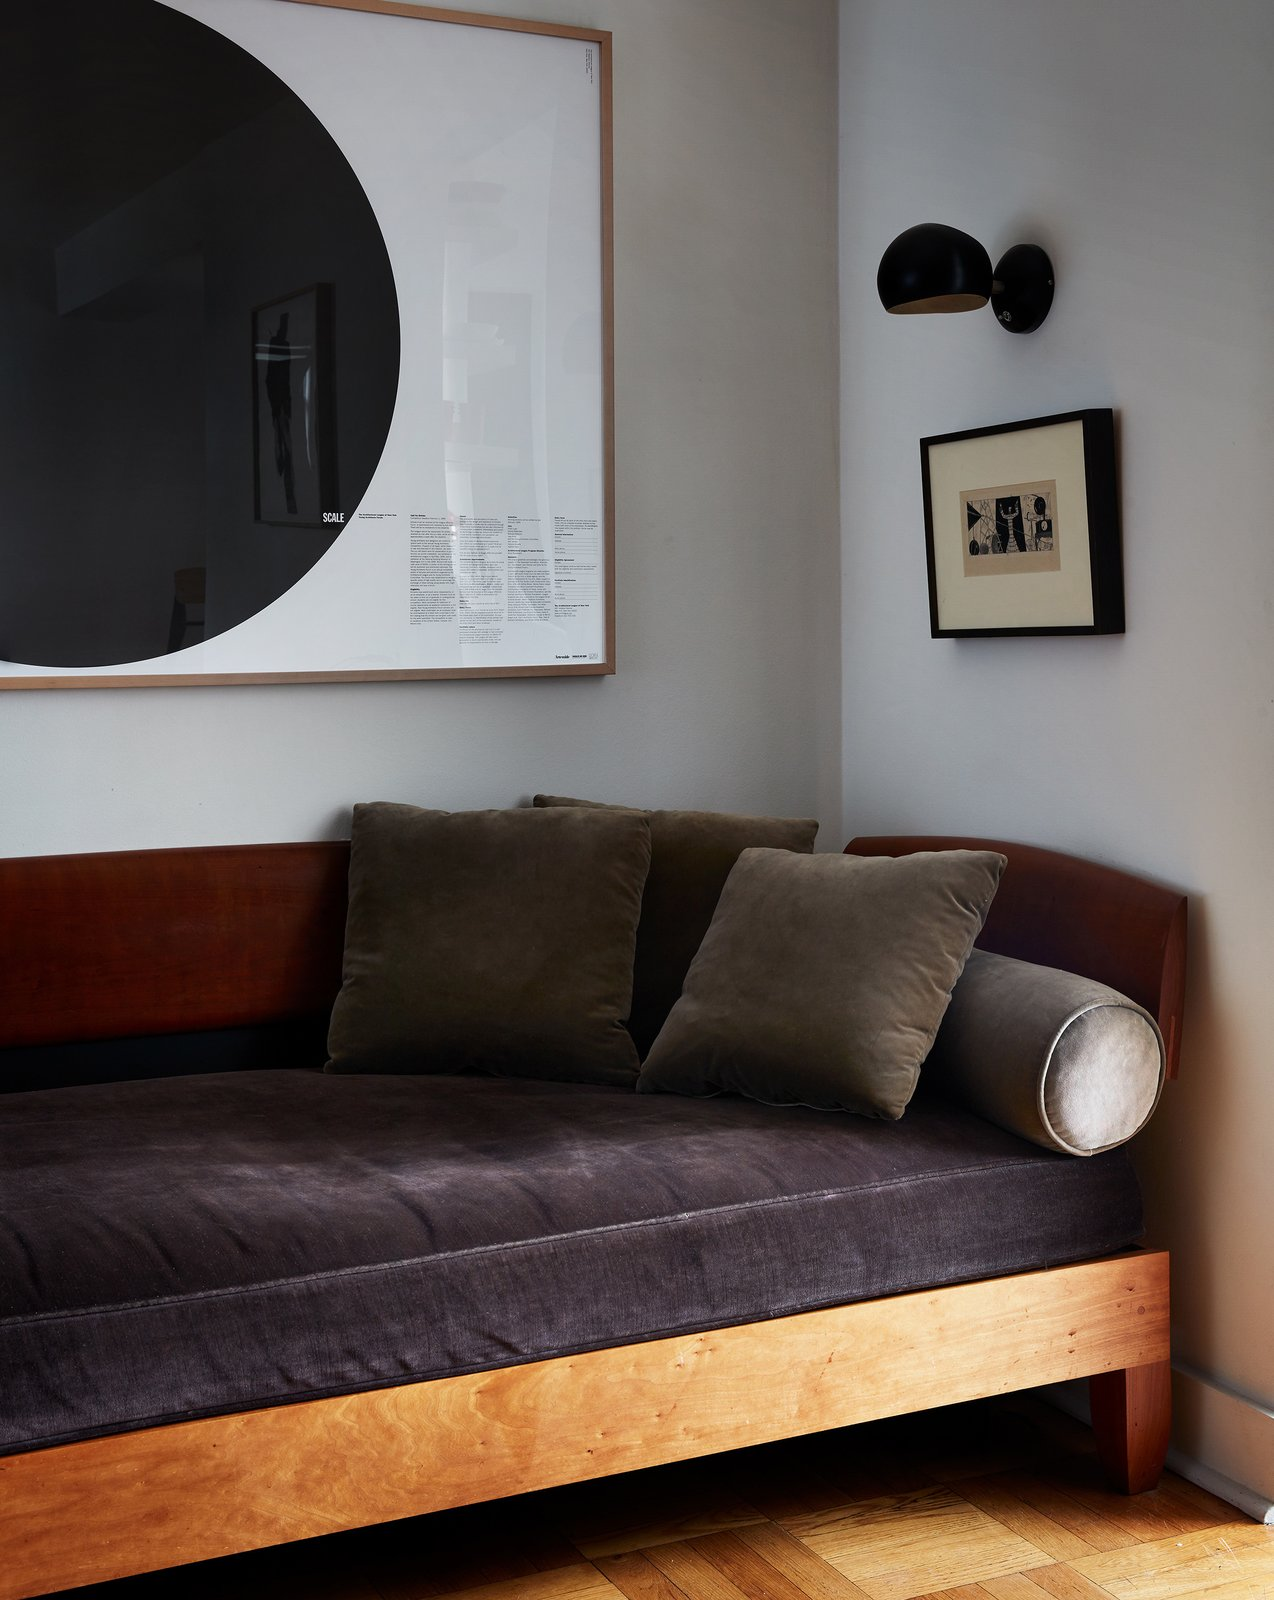 Living Room, Sofa, Wall Lighting, and Medium Hardwood Floor The velvet-upholstered daybed is a custom design by Chris Lehrecke.  My Photos from Two Magazine Creatives Fit Graphic Art and Vintage Furniture In a Brooklyn Apartment